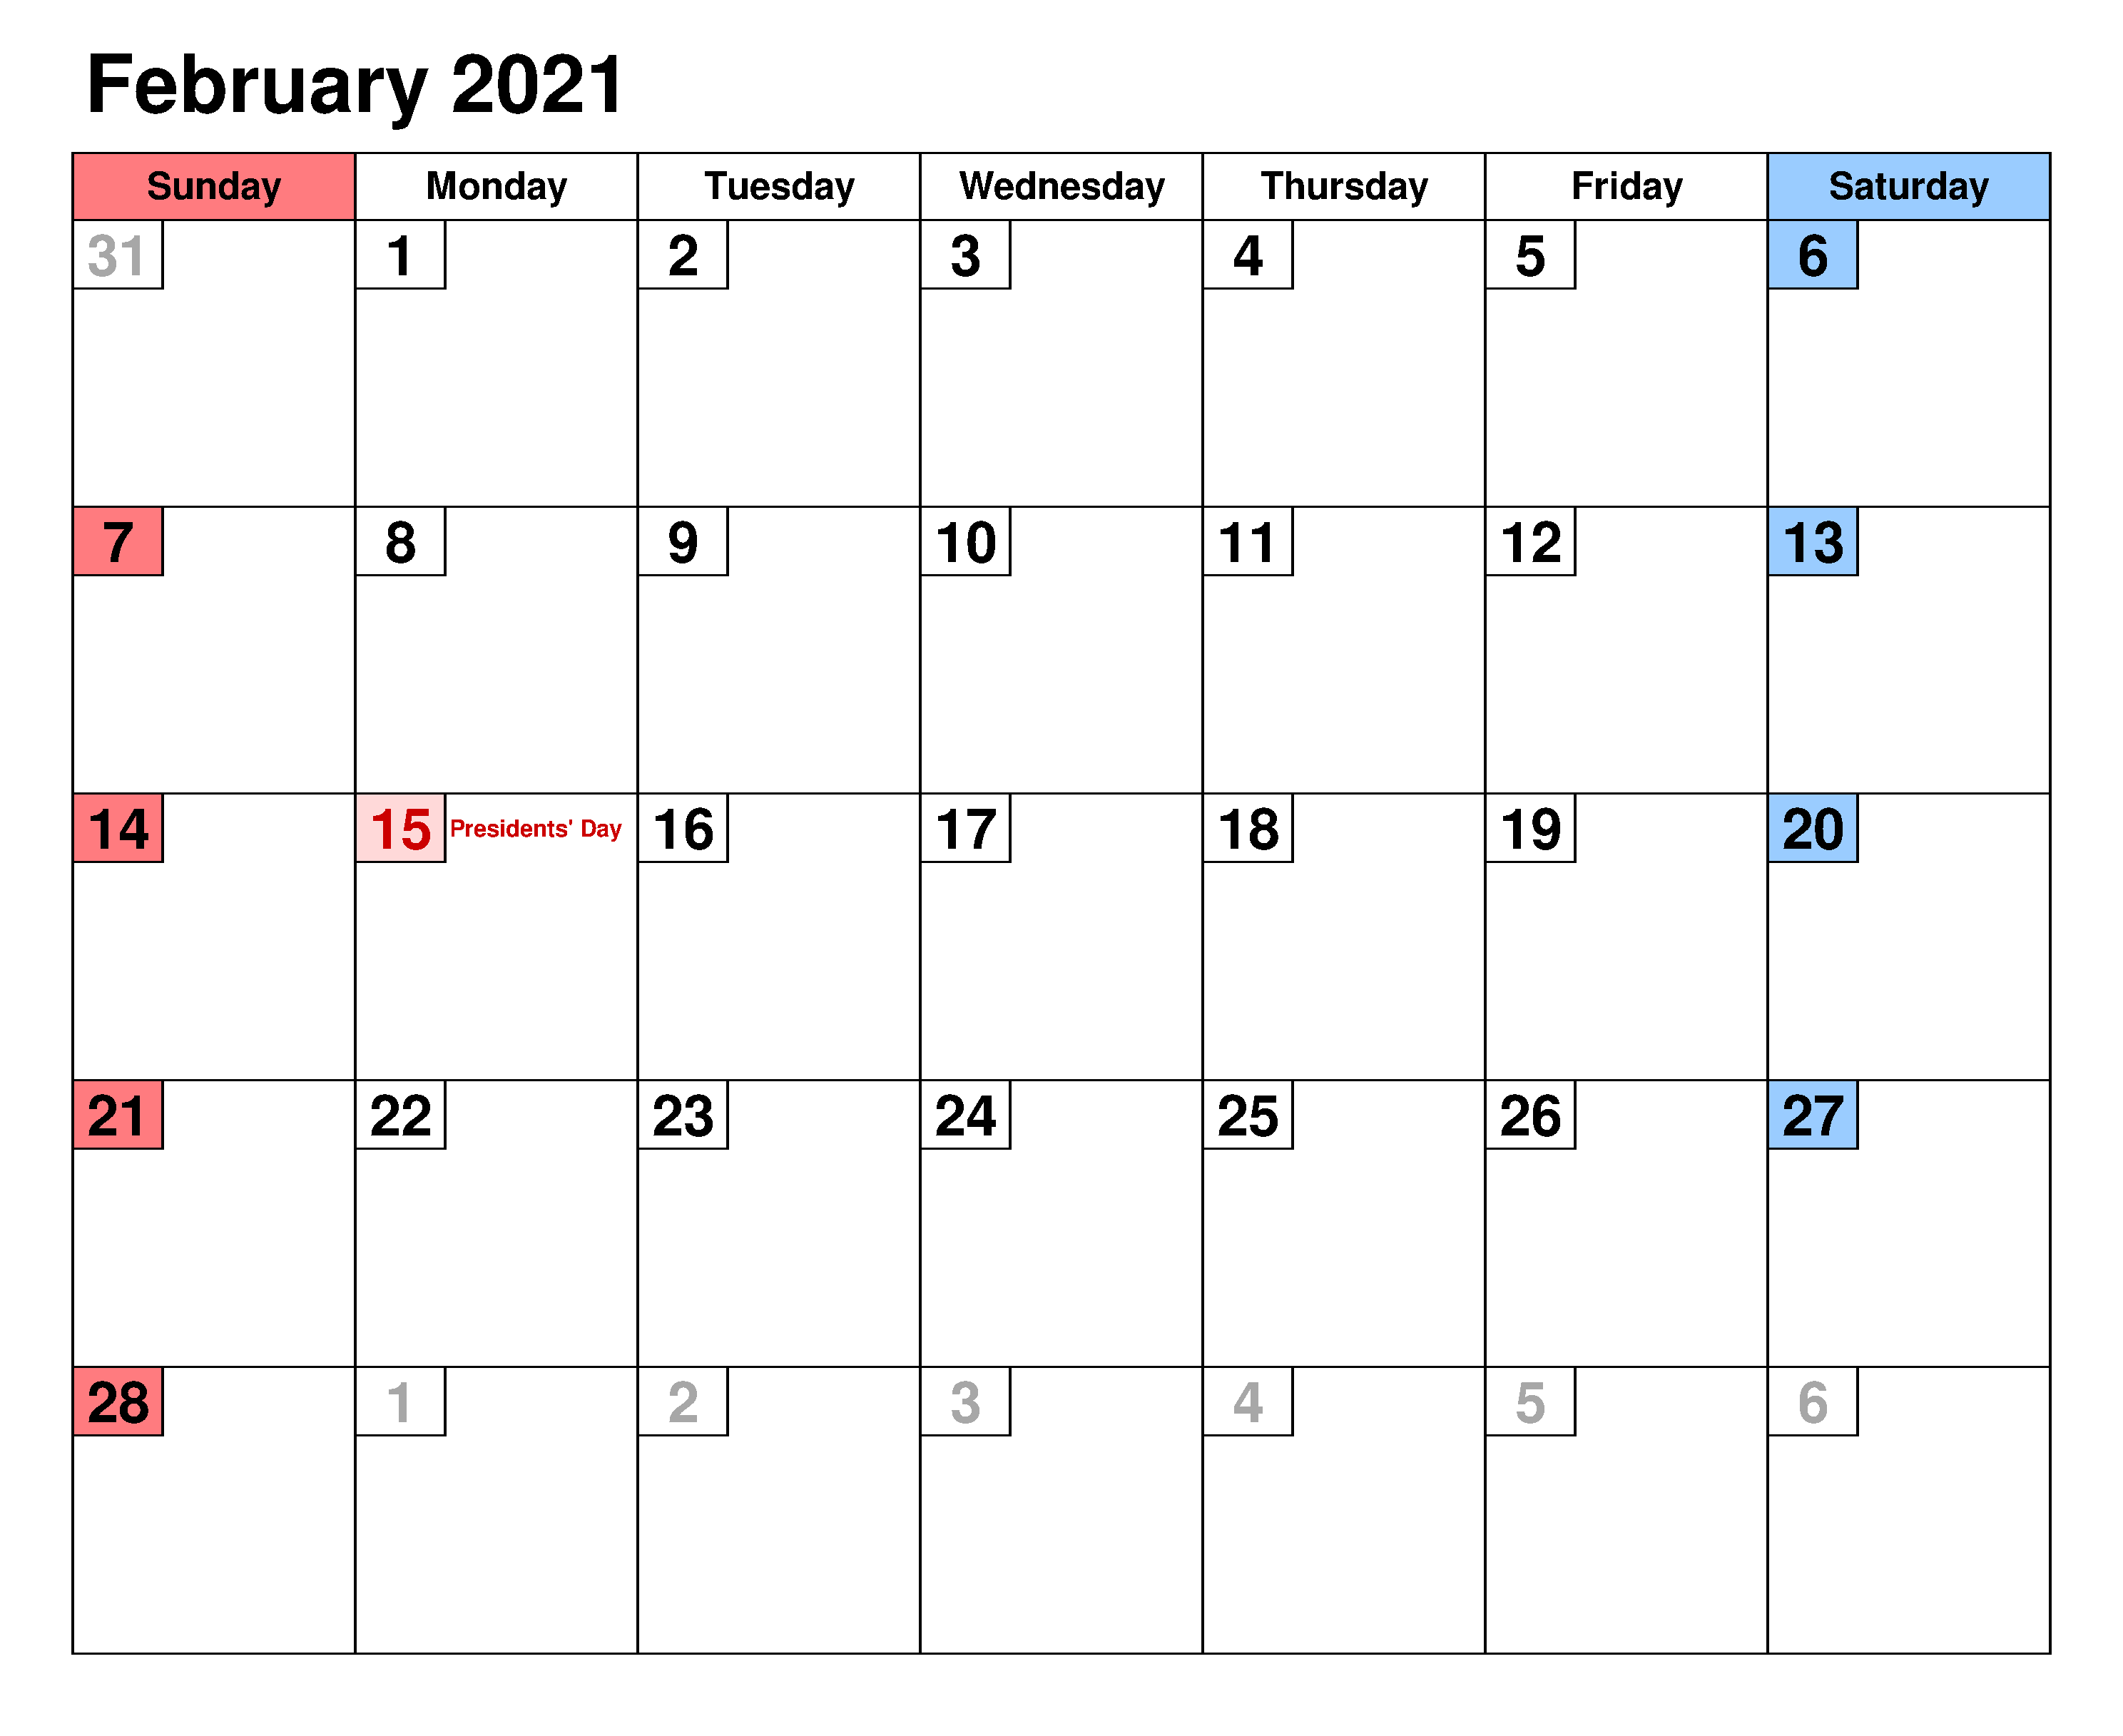 Fillable February 2021 Calnedar Excel